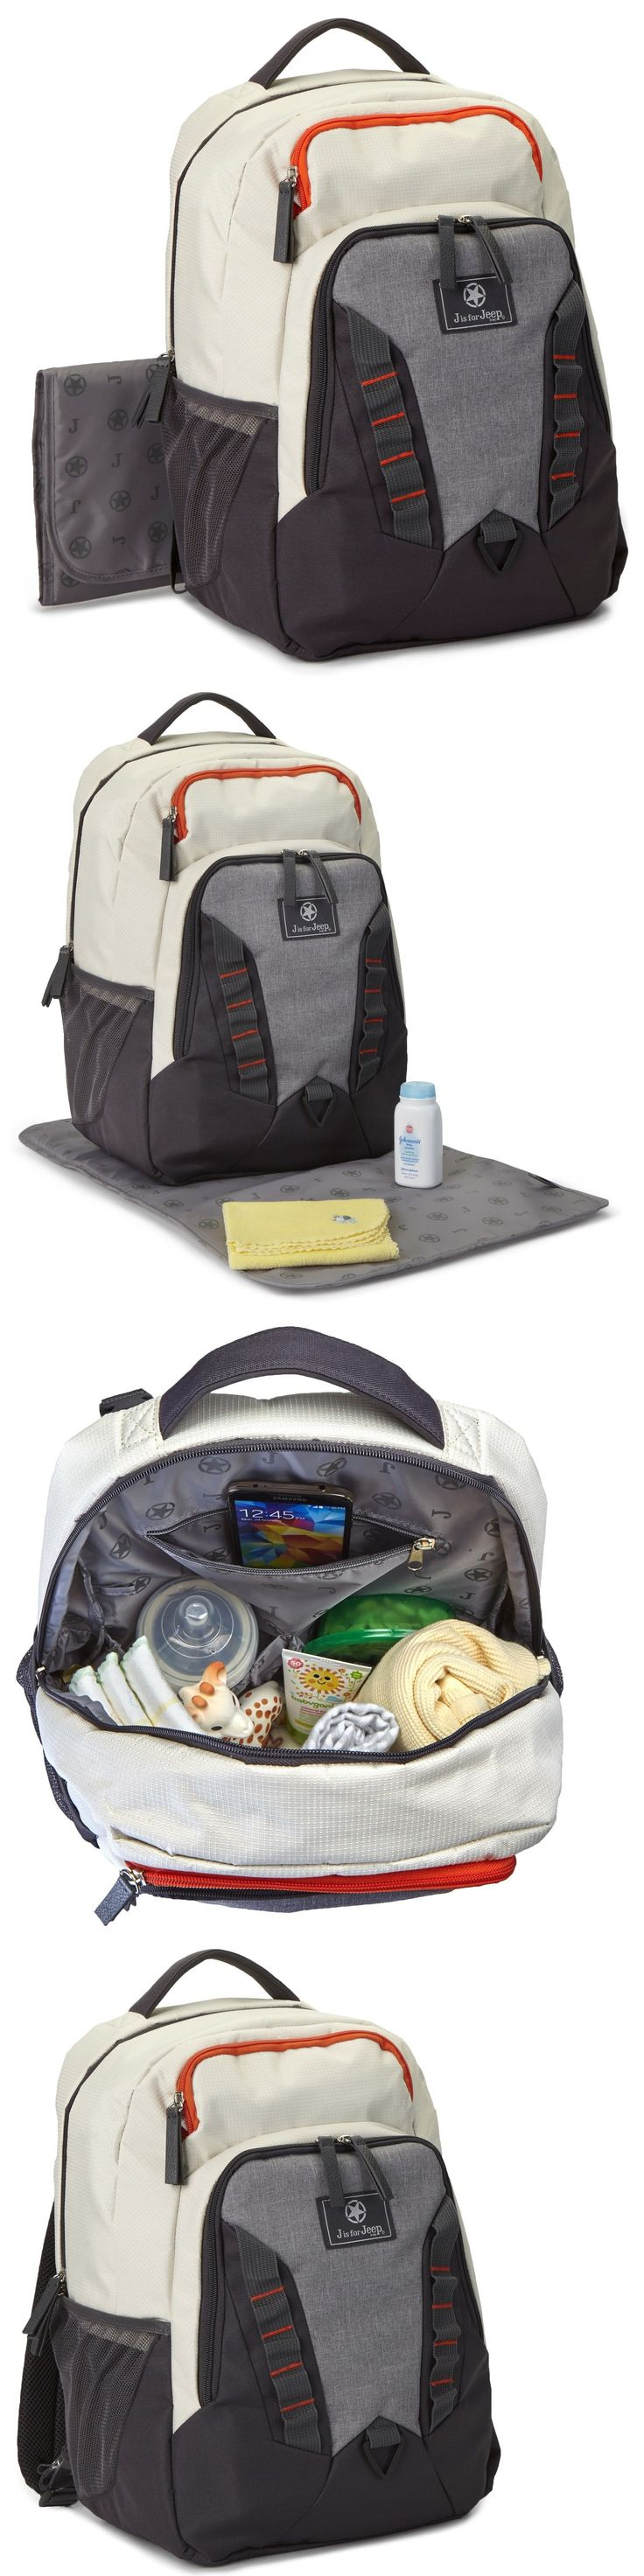 Other Diapering 20399: Jeep Adventurers Charging Baby Diaper Bag Backpack W Power Bank And Changing Pad -> BUY IT NOW ONLY: $49.99 on eBay!